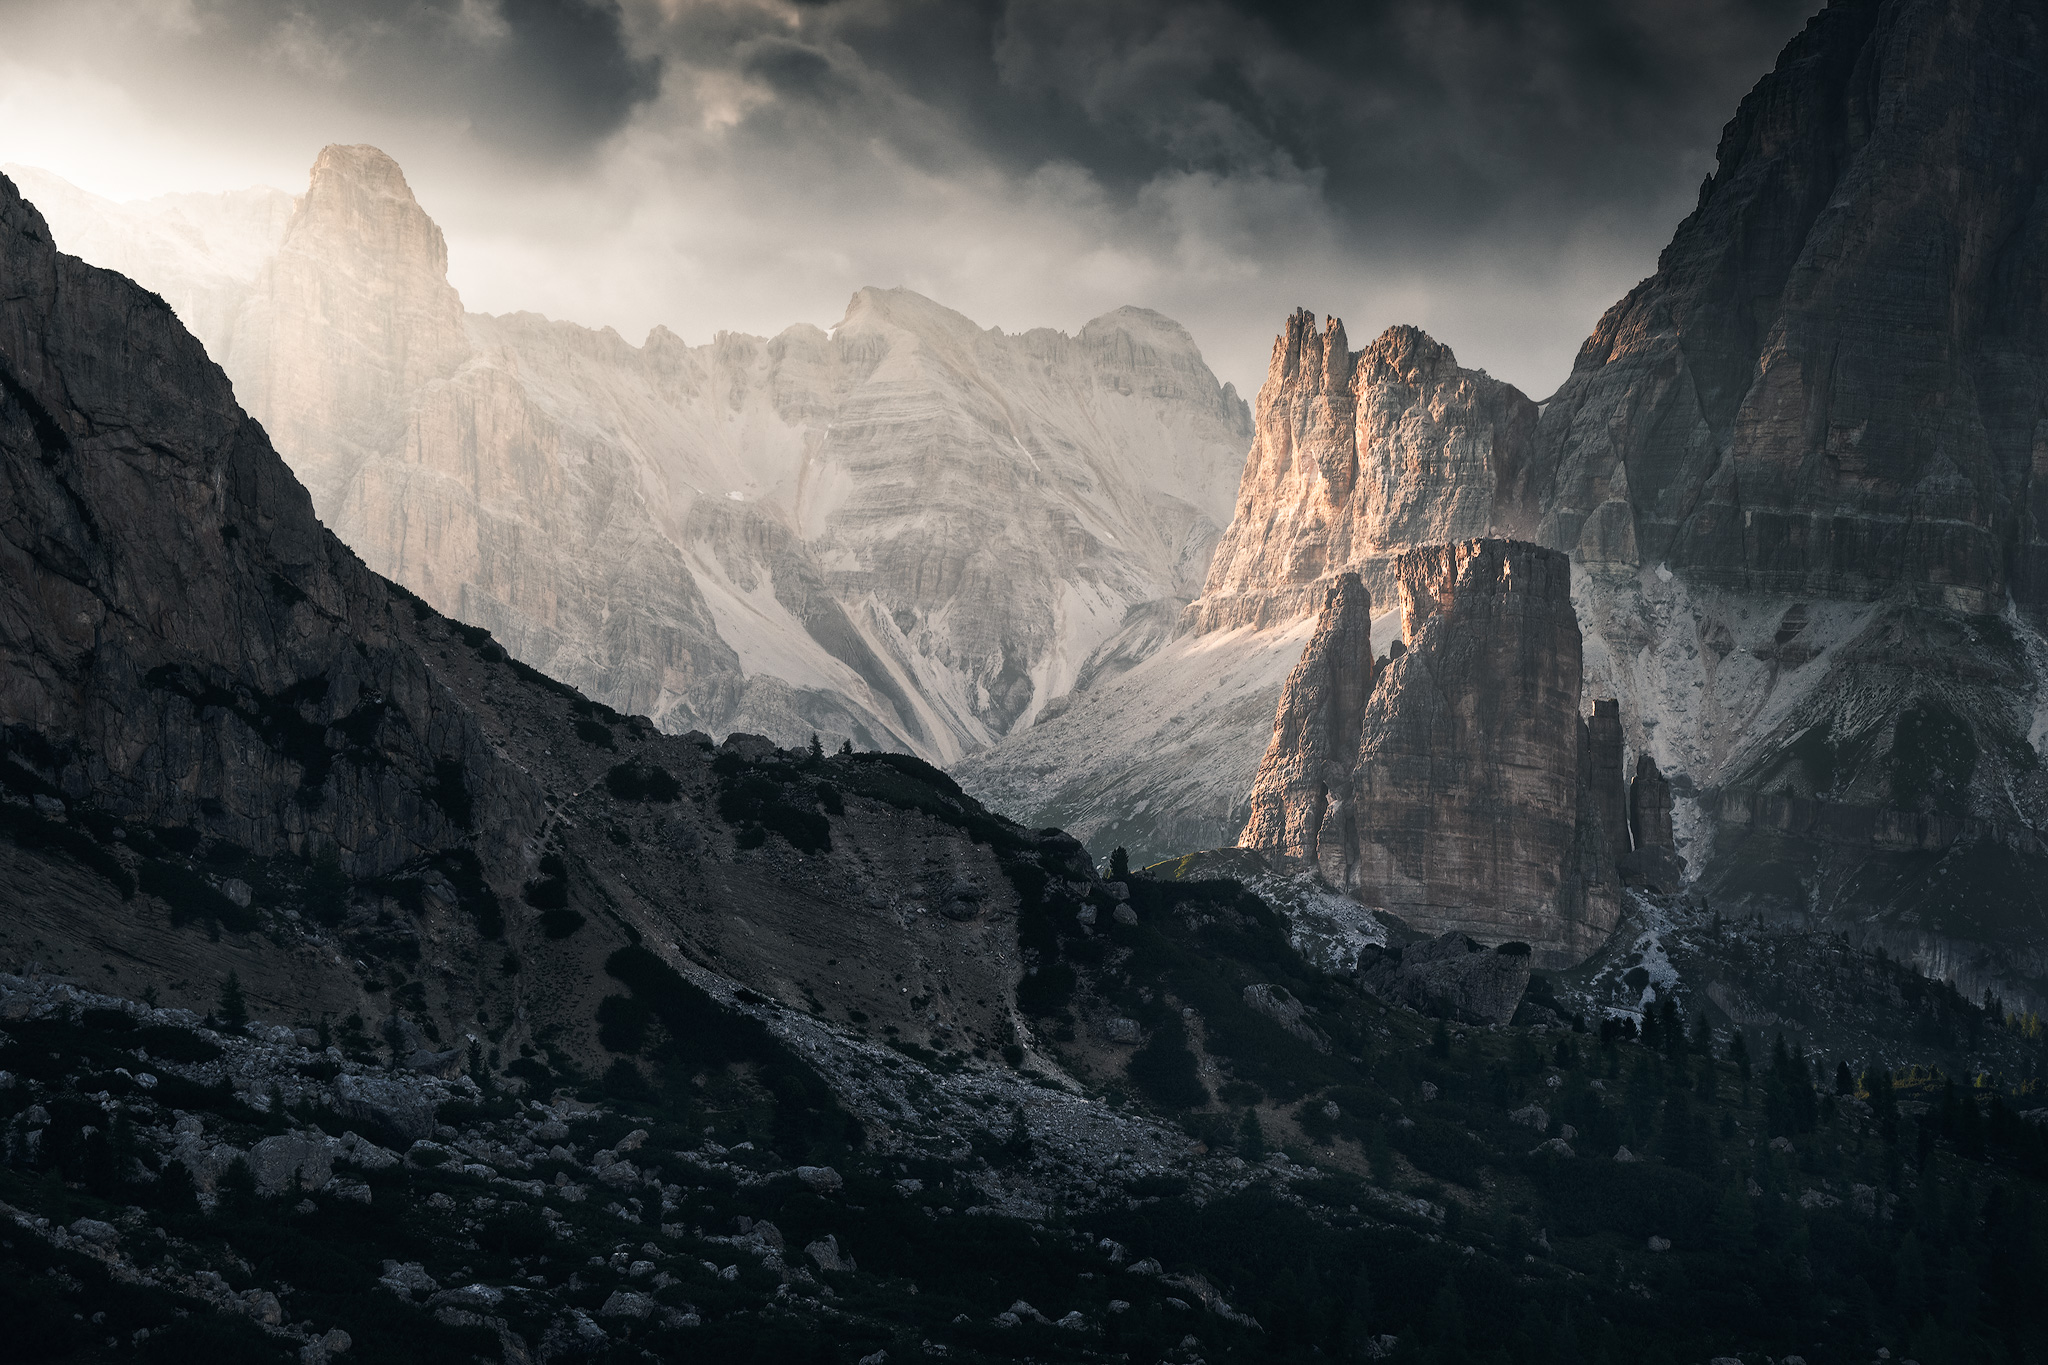 dolomites_workshop_14.jpg